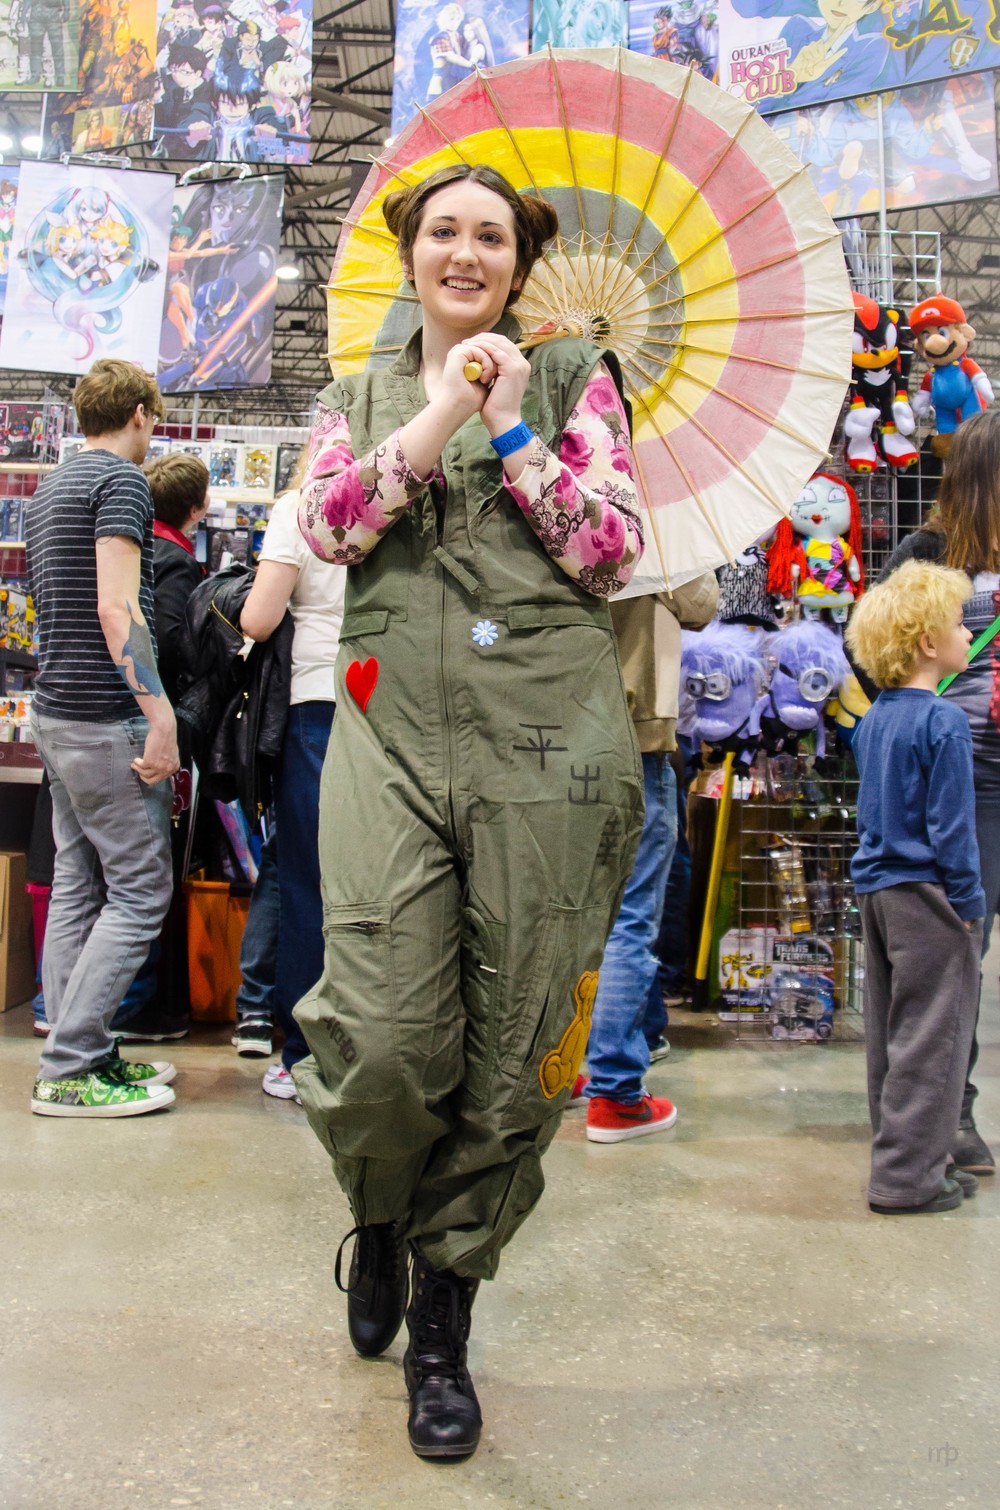 Kaylee Frye from Firefly. This portrait was taken at Planet Comicon 2014.